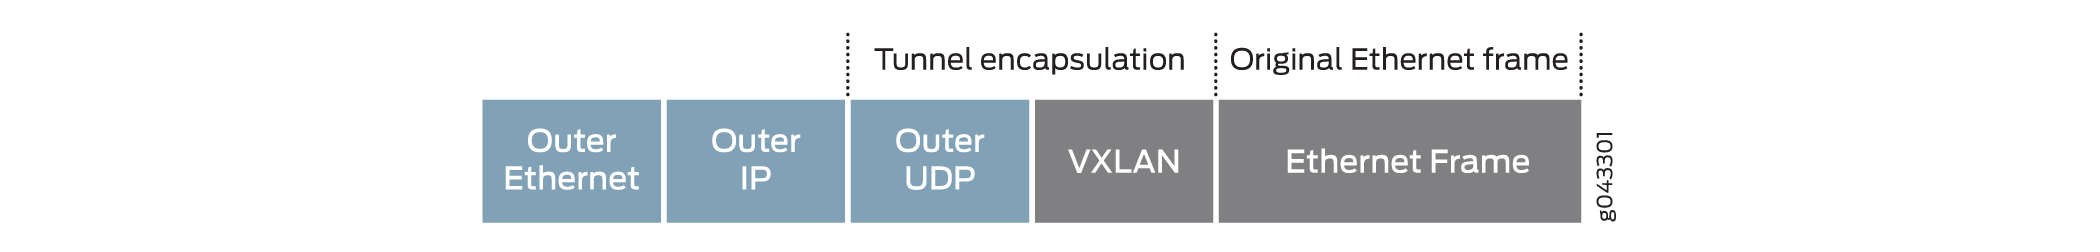 EVPN-over-VXLAN Supported Functionality - TechLibrary